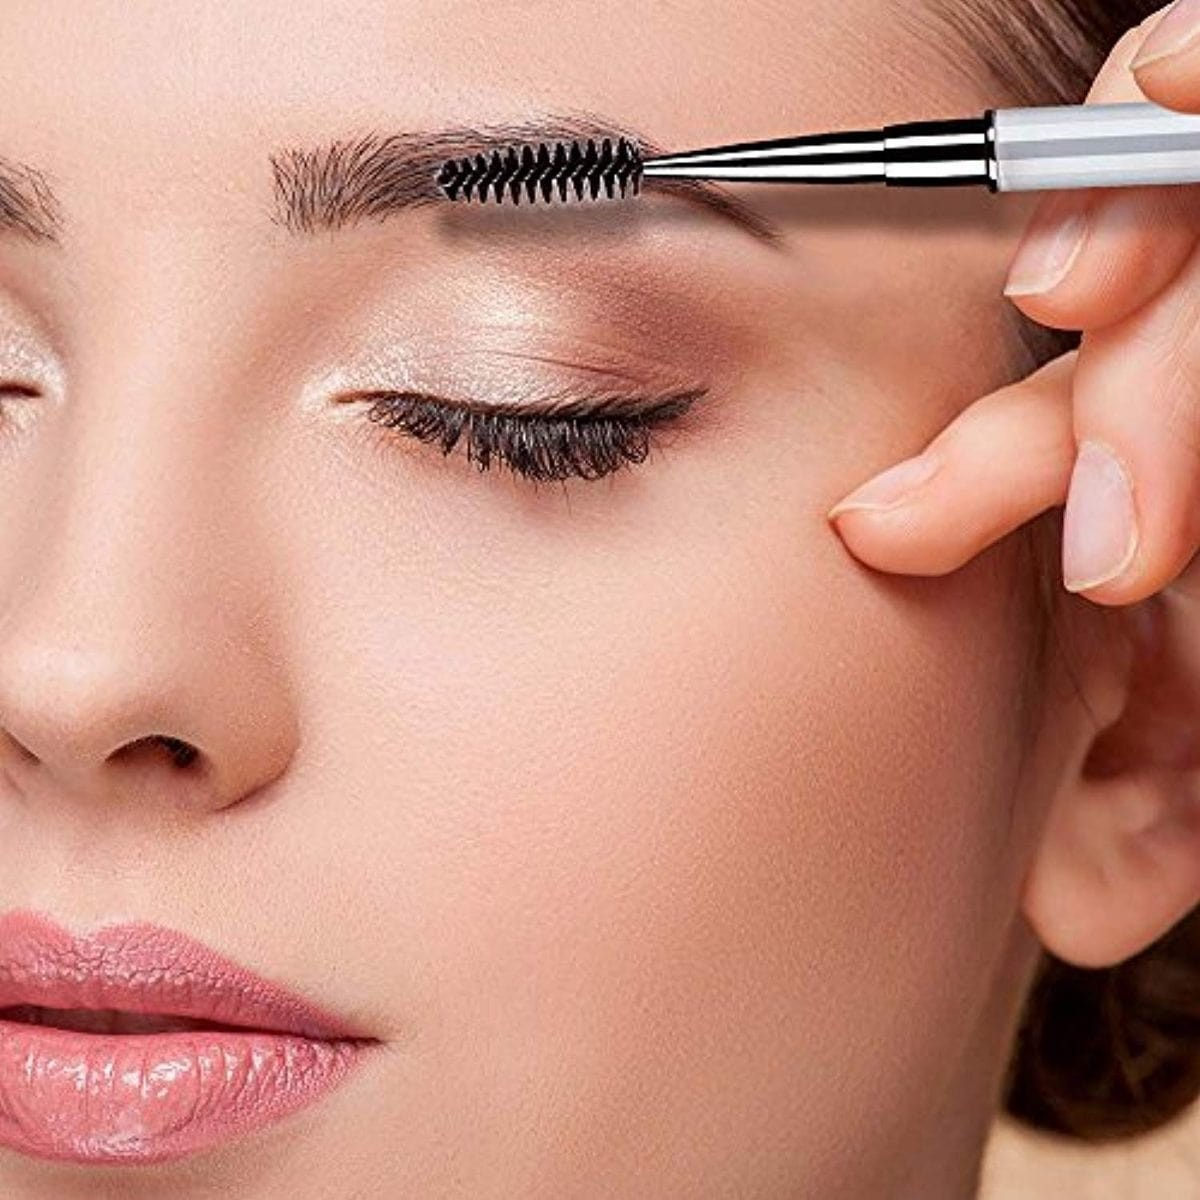 close up of woman's face, eyes closed and using a spoolie brush on her Eyebrows.